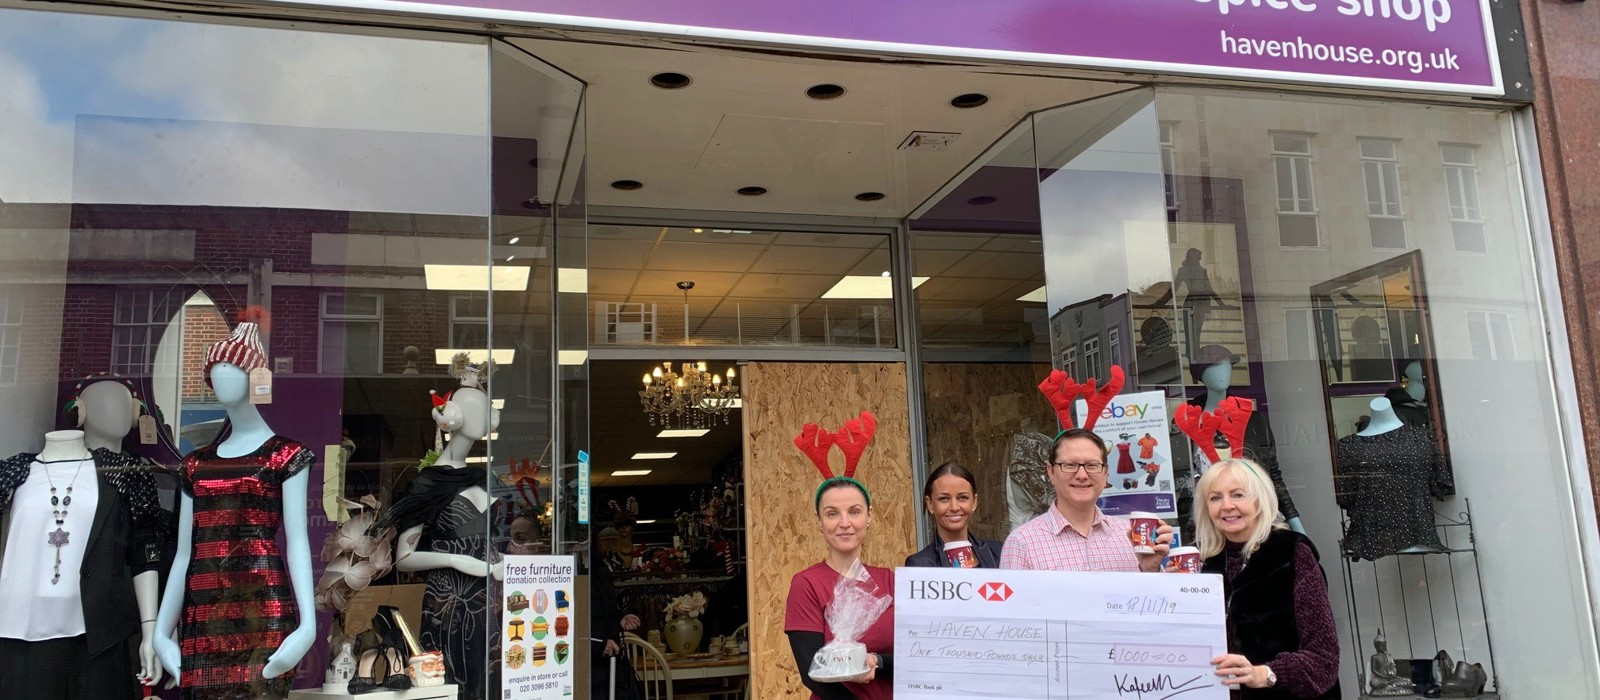 Hospice thanks community after shop break in